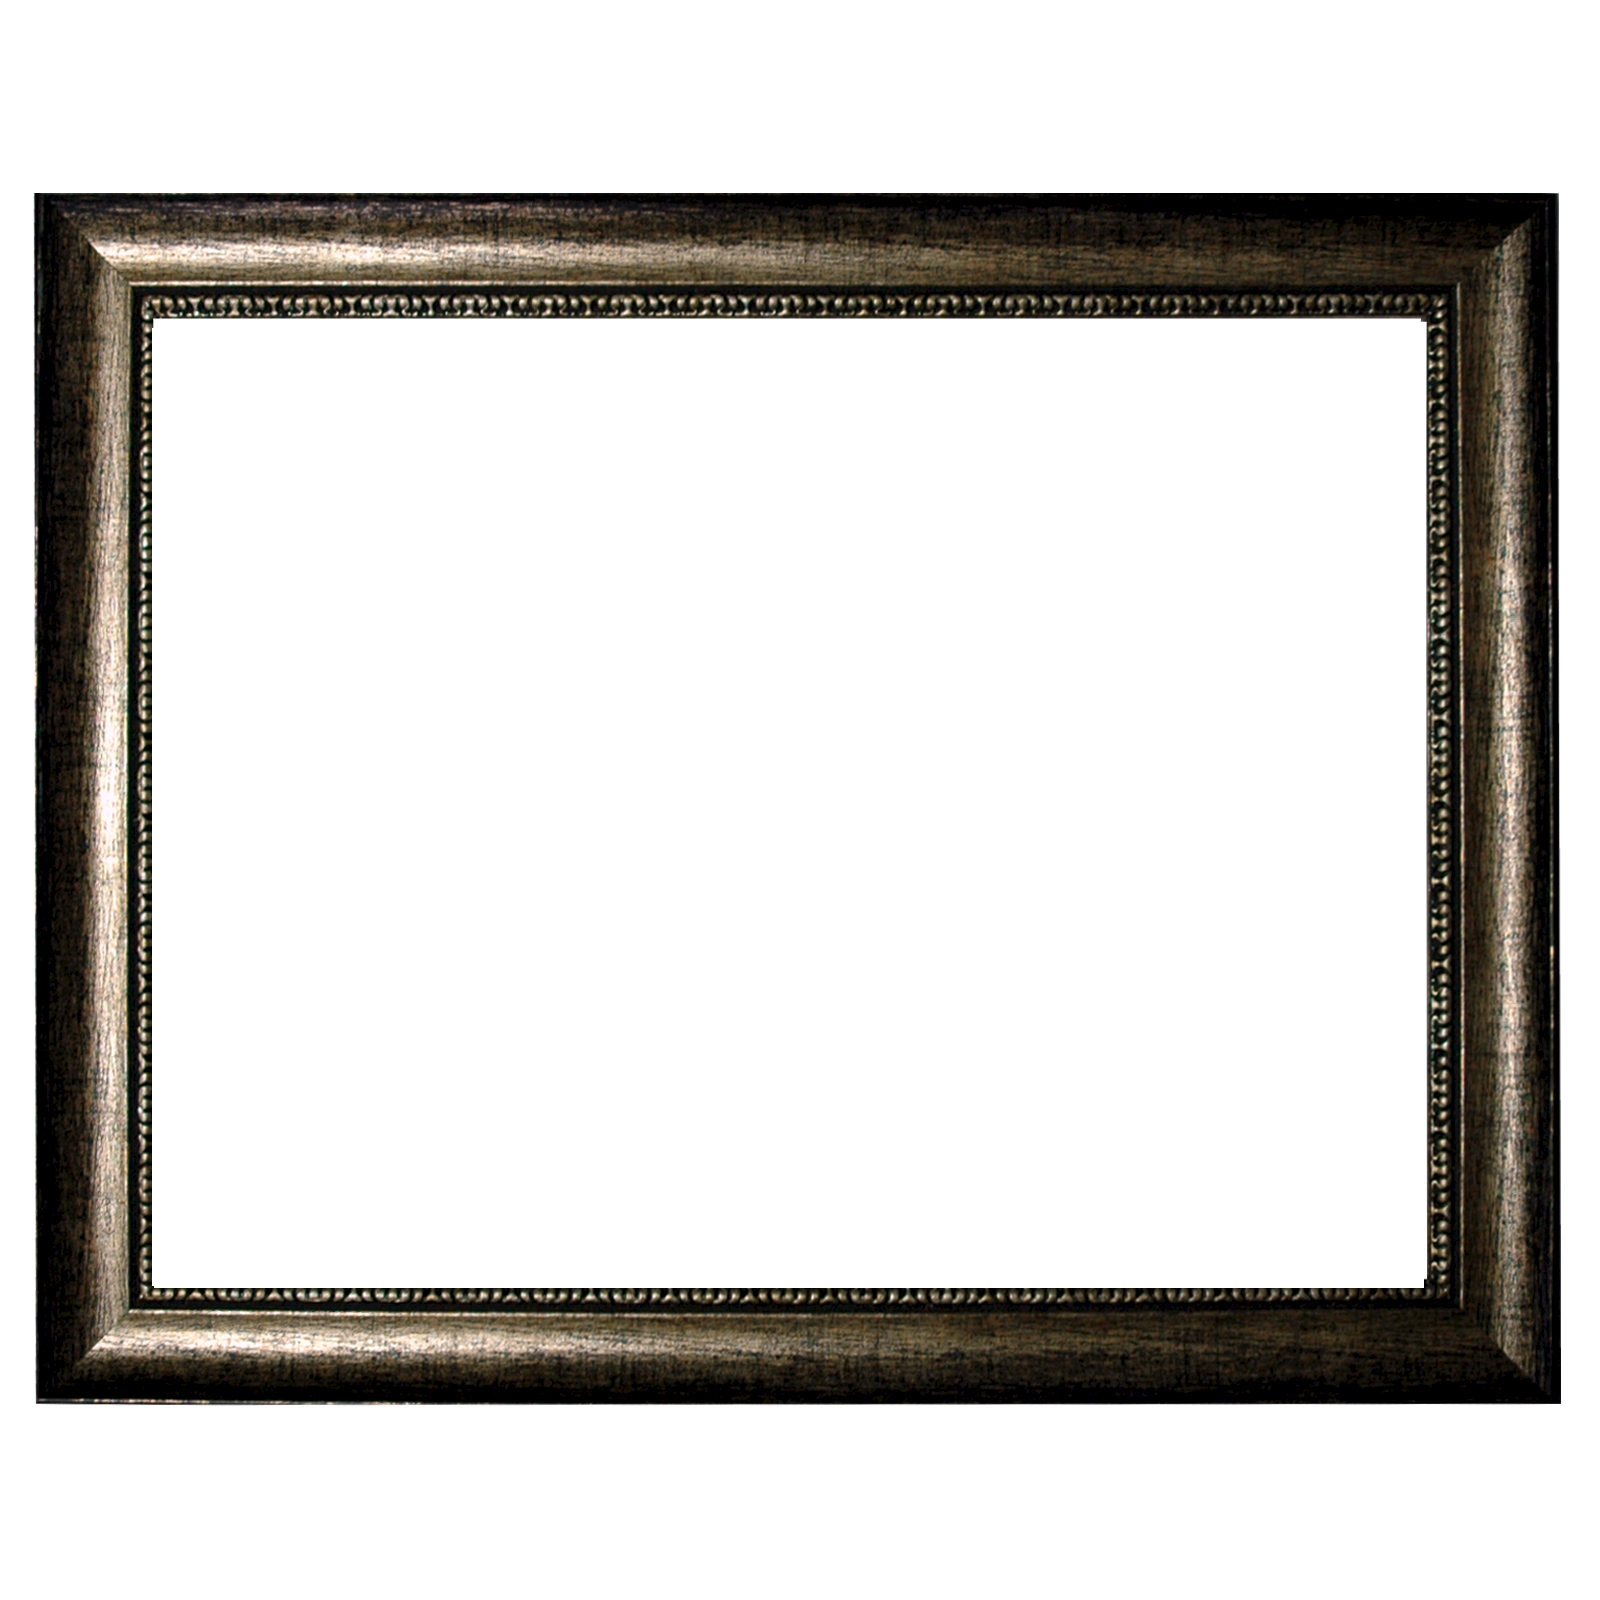 Baroque frame black fine decorated 246 np different variants ebay more pictures to baroque frames black finely decorated 246 np several variants jeuxipadfo Gallery